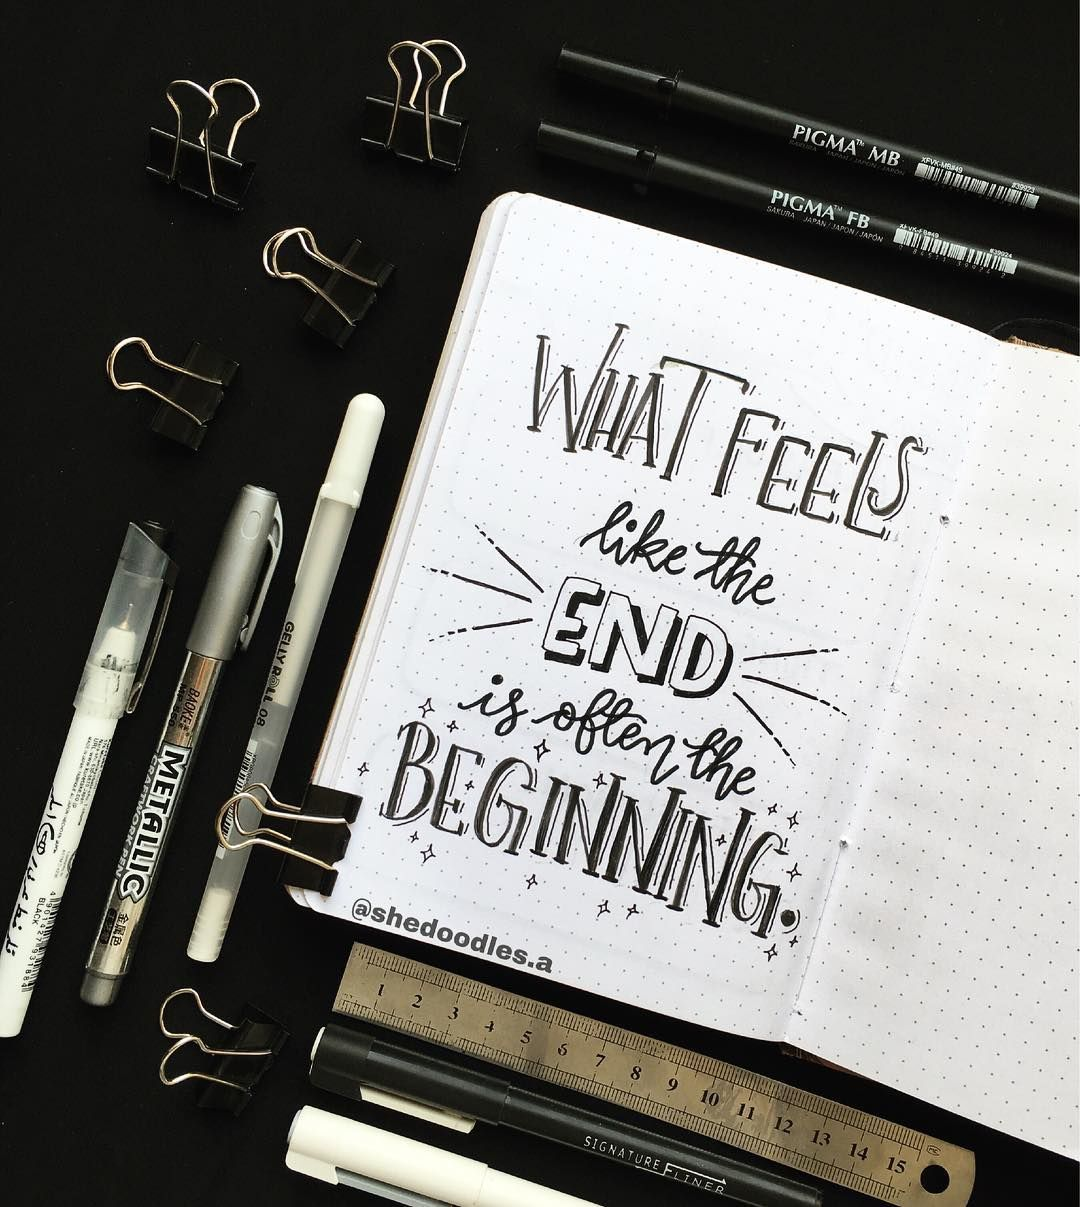 Quote page ideas for your bullet journal so you can stay motivated to complete tasks, finish work, and hit your goals everyday. #bulletjournal